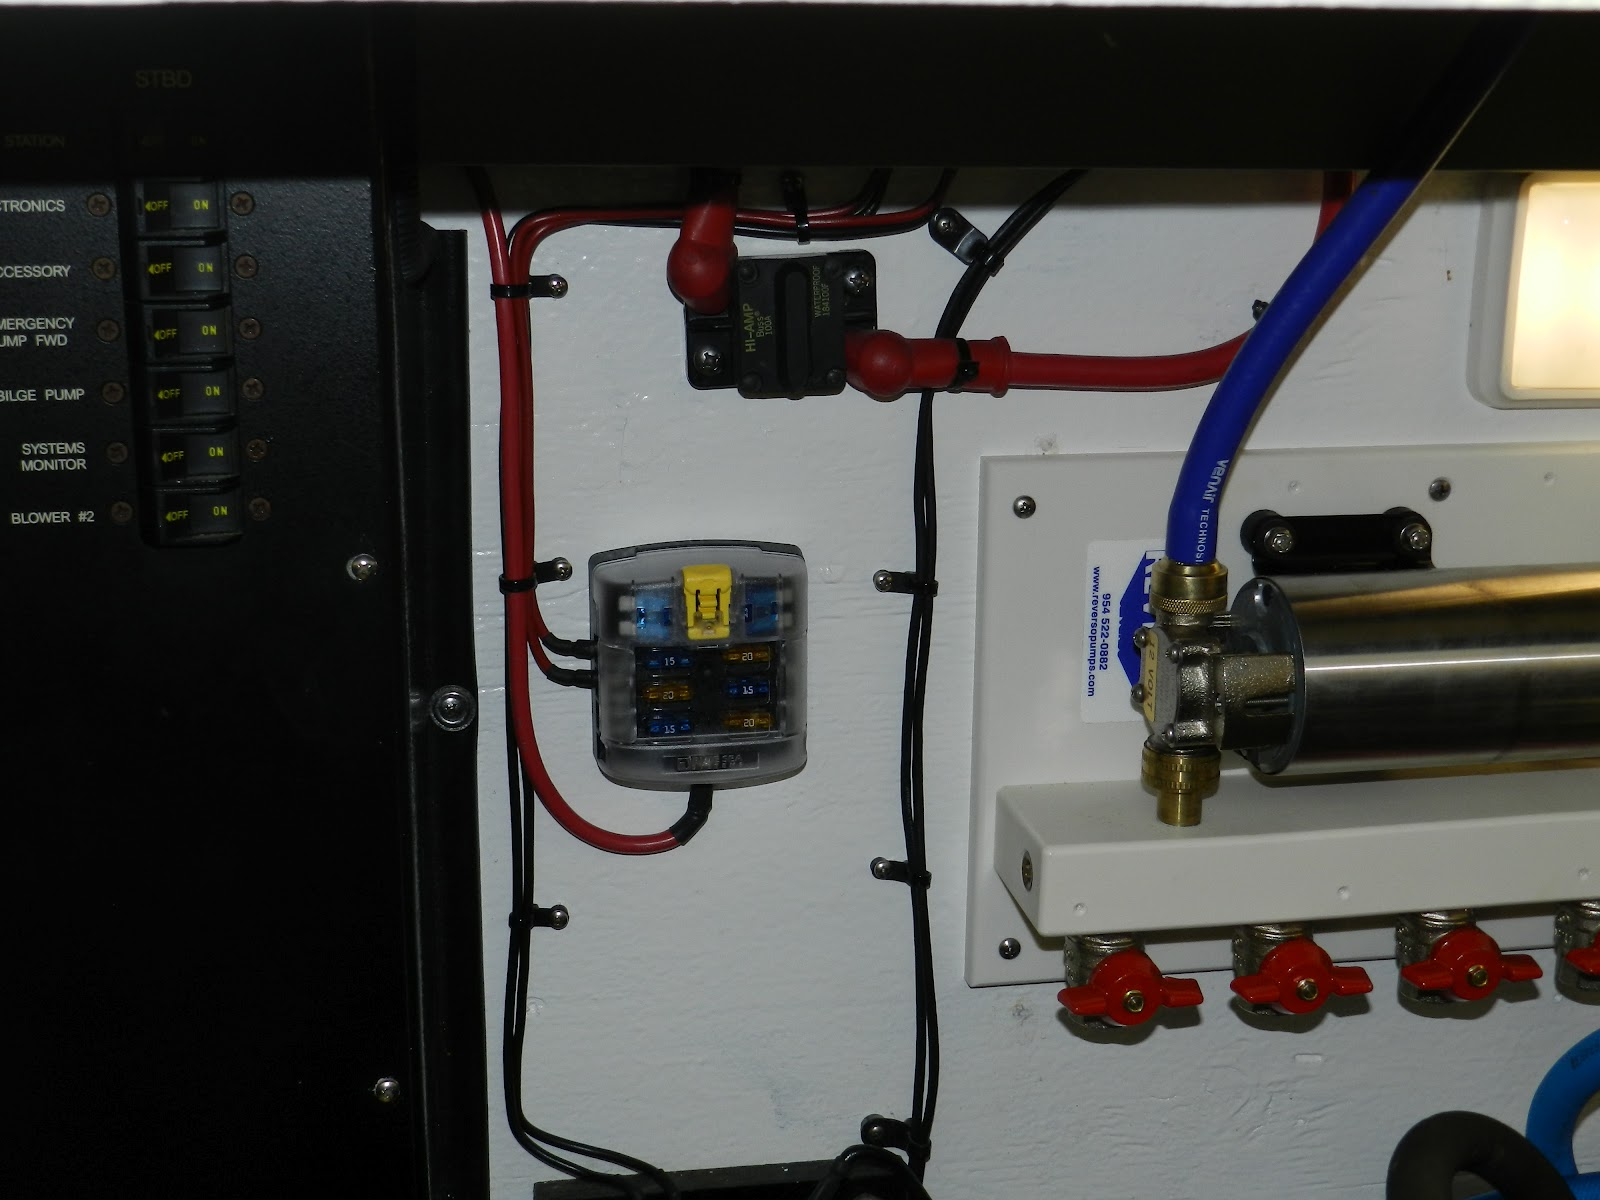 hight resolution of inside the main panel i mounted a 80 amp fuseholder currently the fuseholder is fitted with a 40 amp fuse